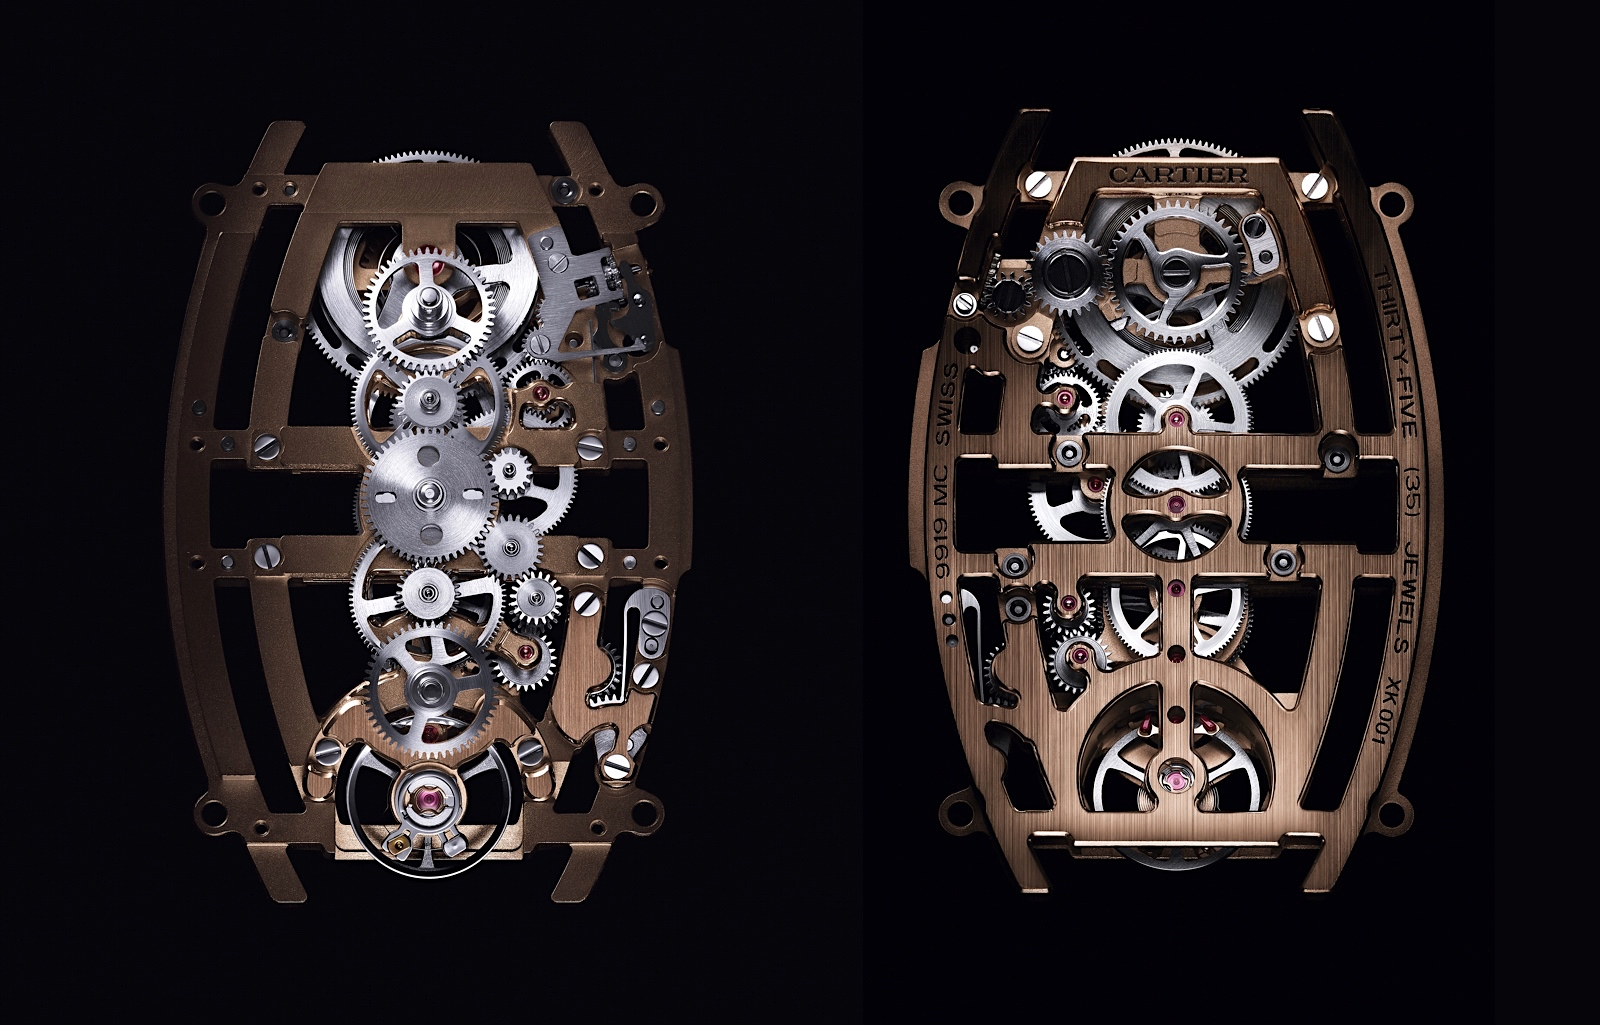 Cartier Privé Tonneau - Skeleton Dual Time Zone calibre 9919 MC